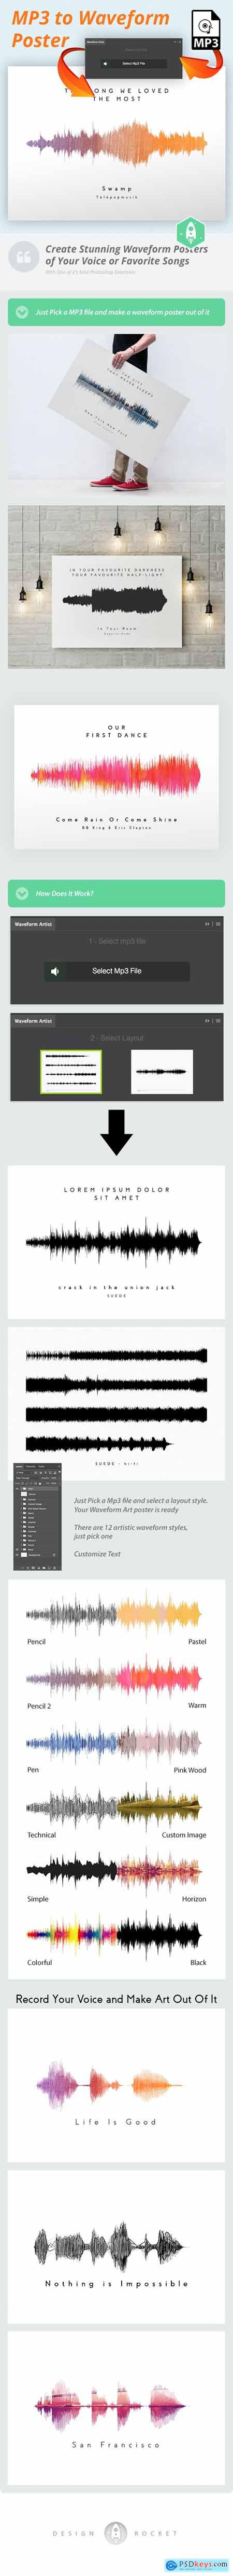 Waveform Artist - MP3 to Waveform Poster 20644757